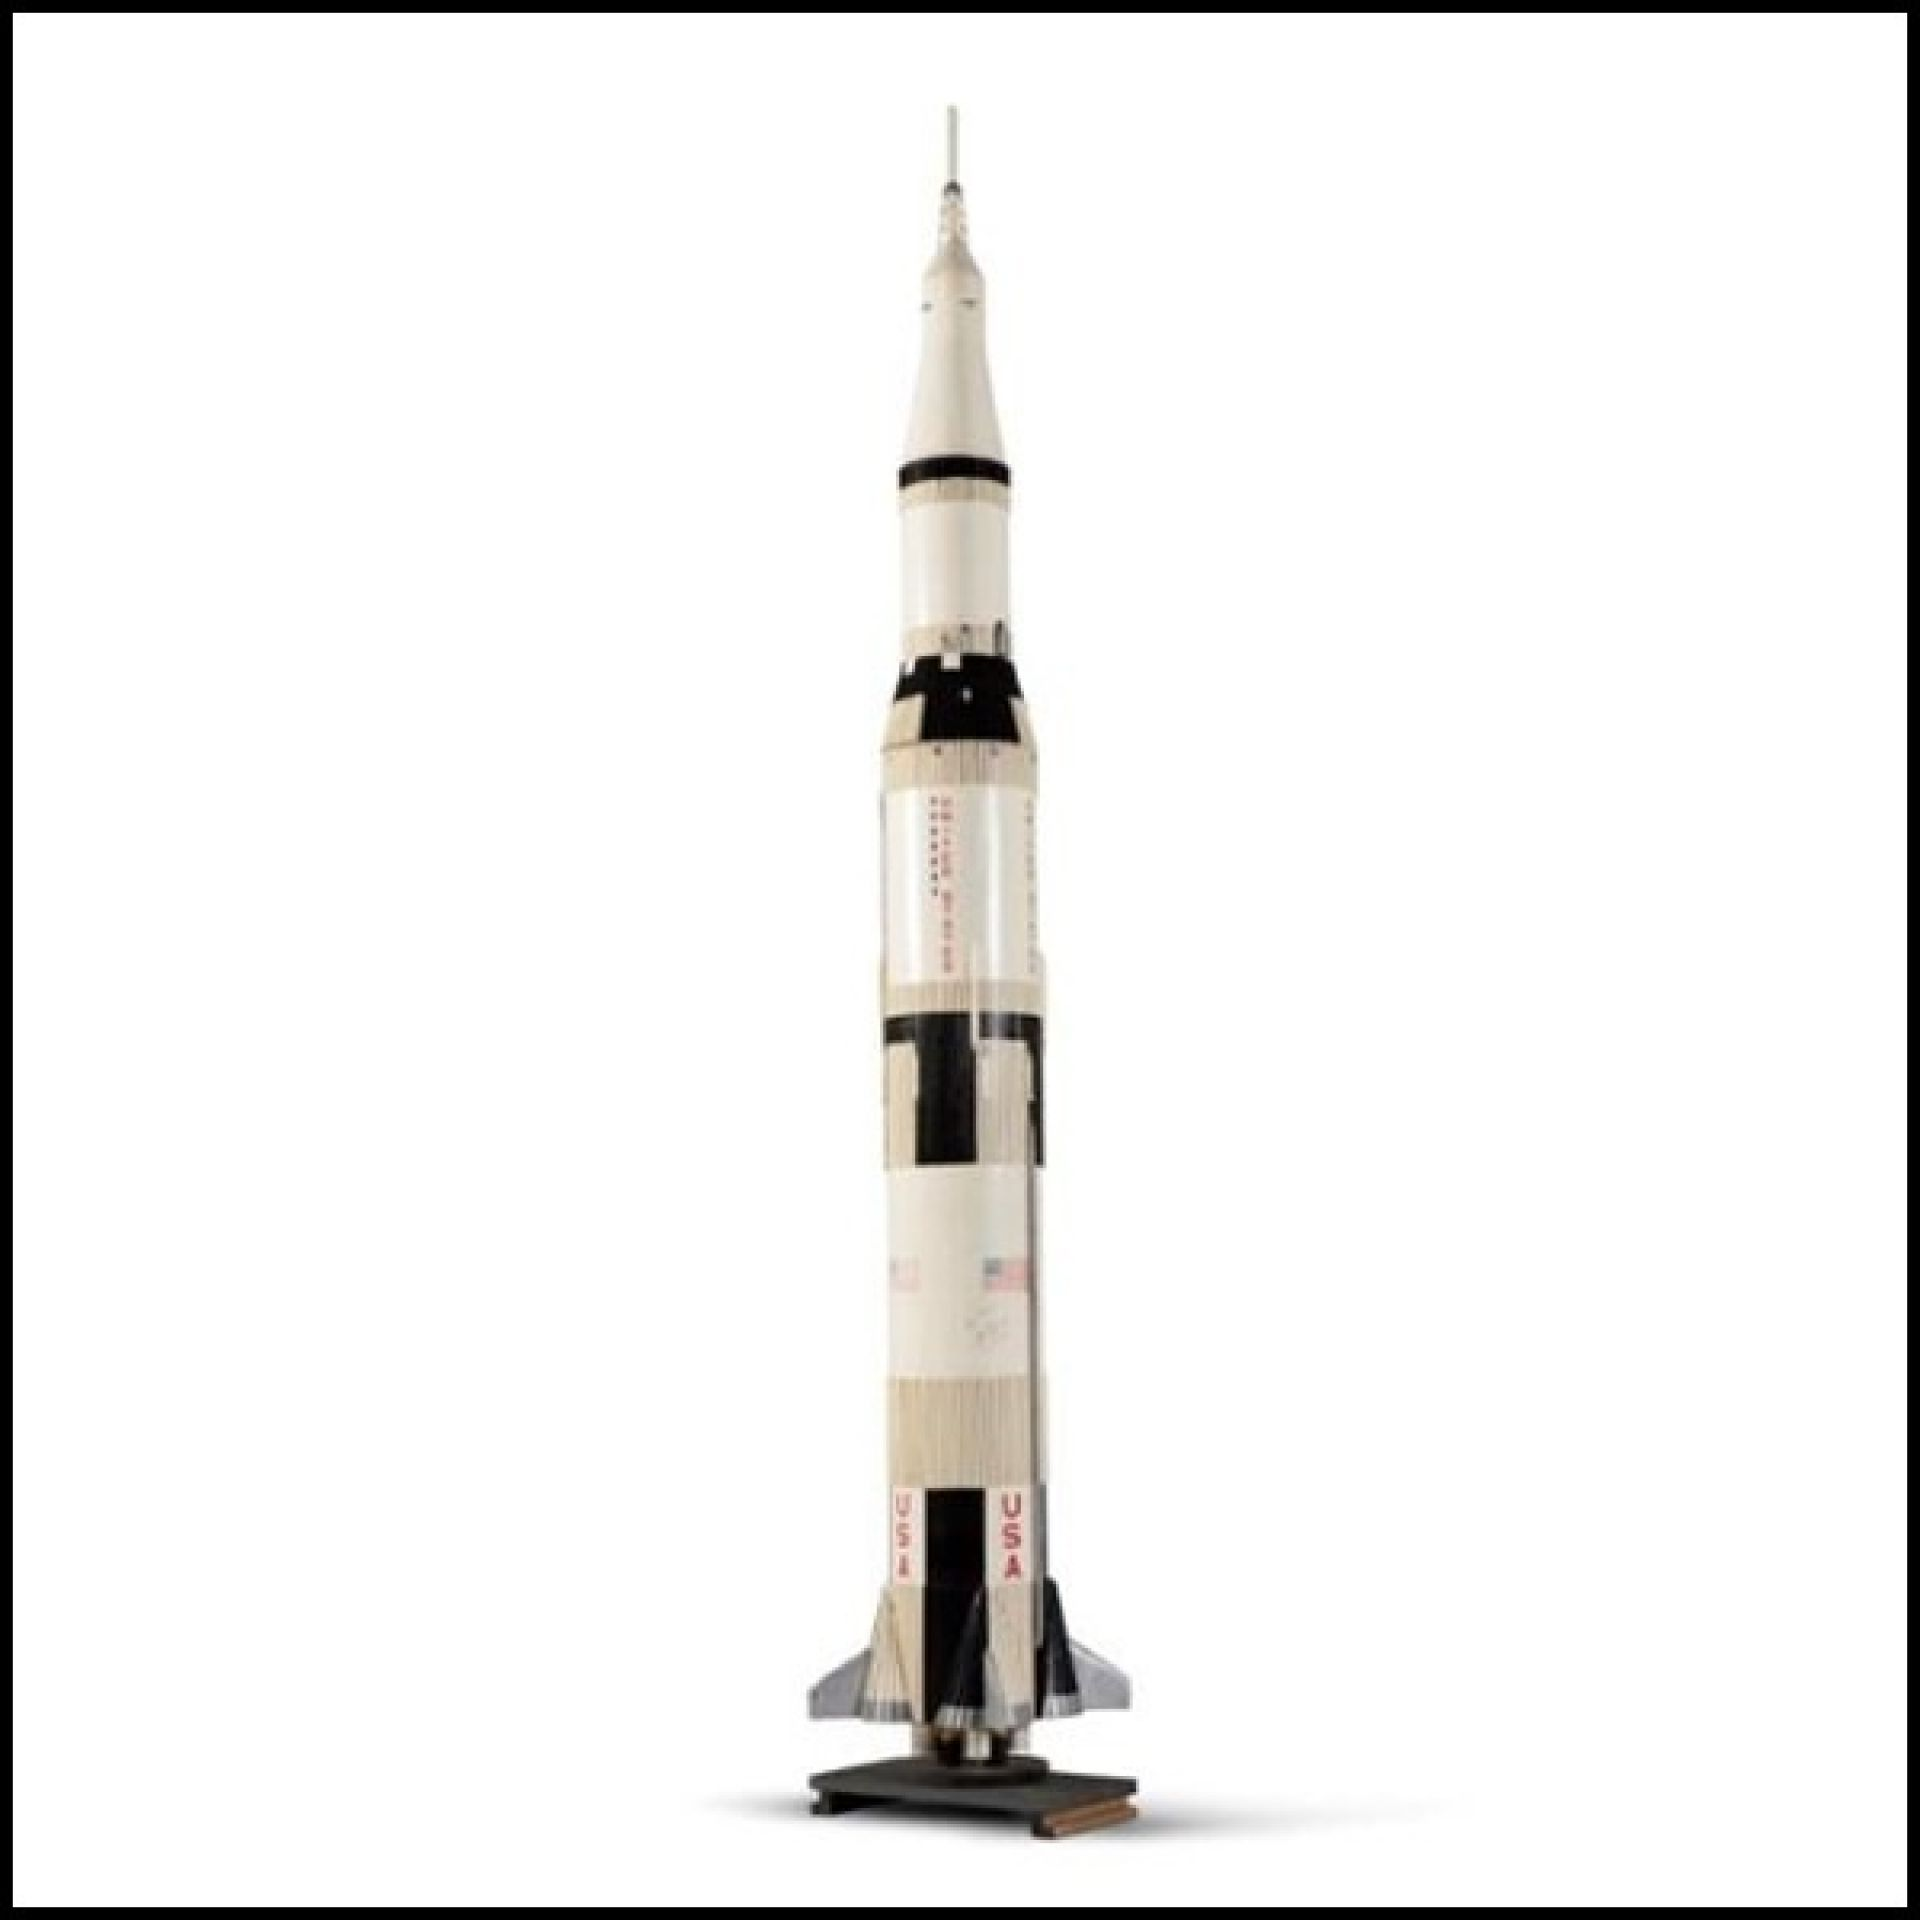 MODEL ROCKET WOOD INCLUDING BALSA AND EPOXY RESIN SCALE 1 / 25TH PC-SATURN V